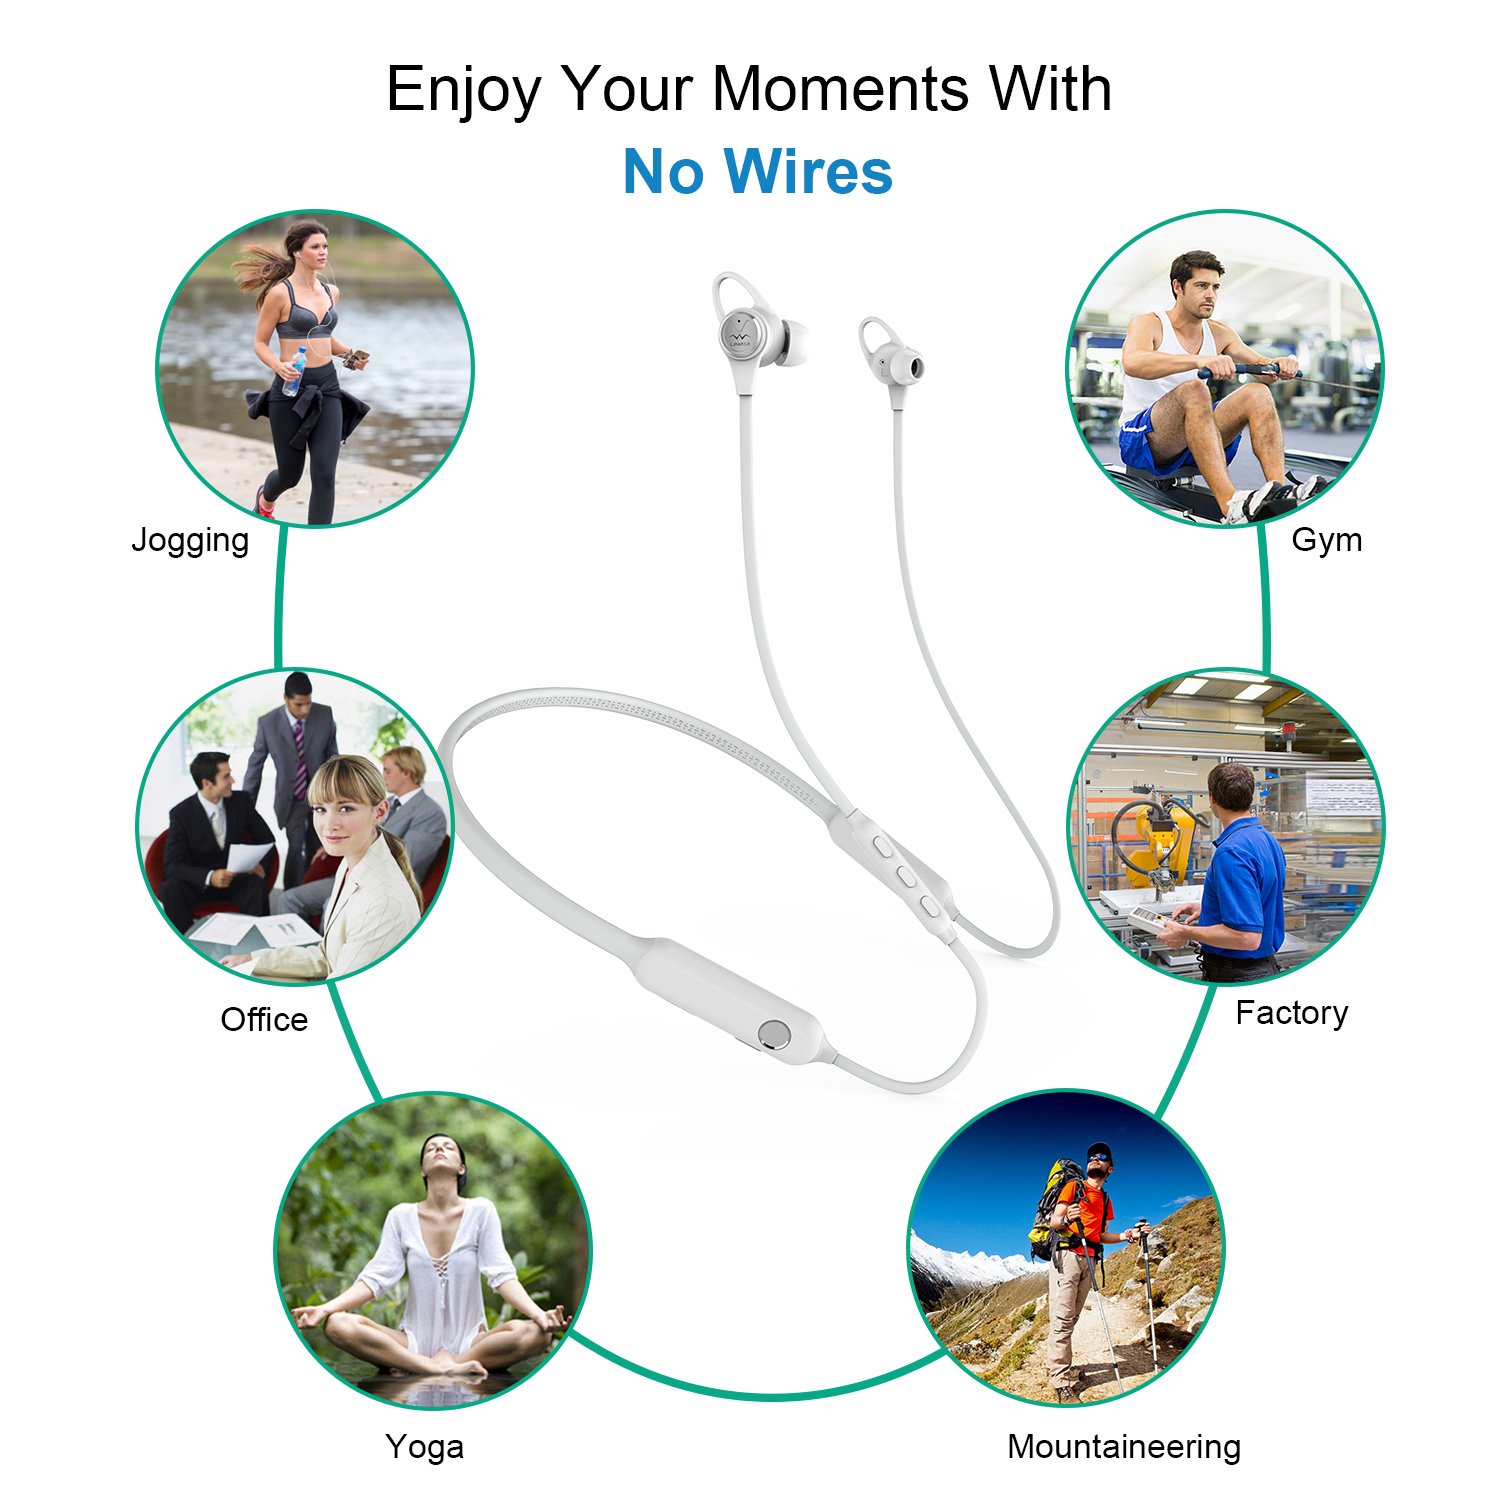 Avoid Noise - Advanced active noise cancelling (ANC) technology free yourself from external noise, airplane cabin noise, city traffic or busy office by flipping the switch when you needed.